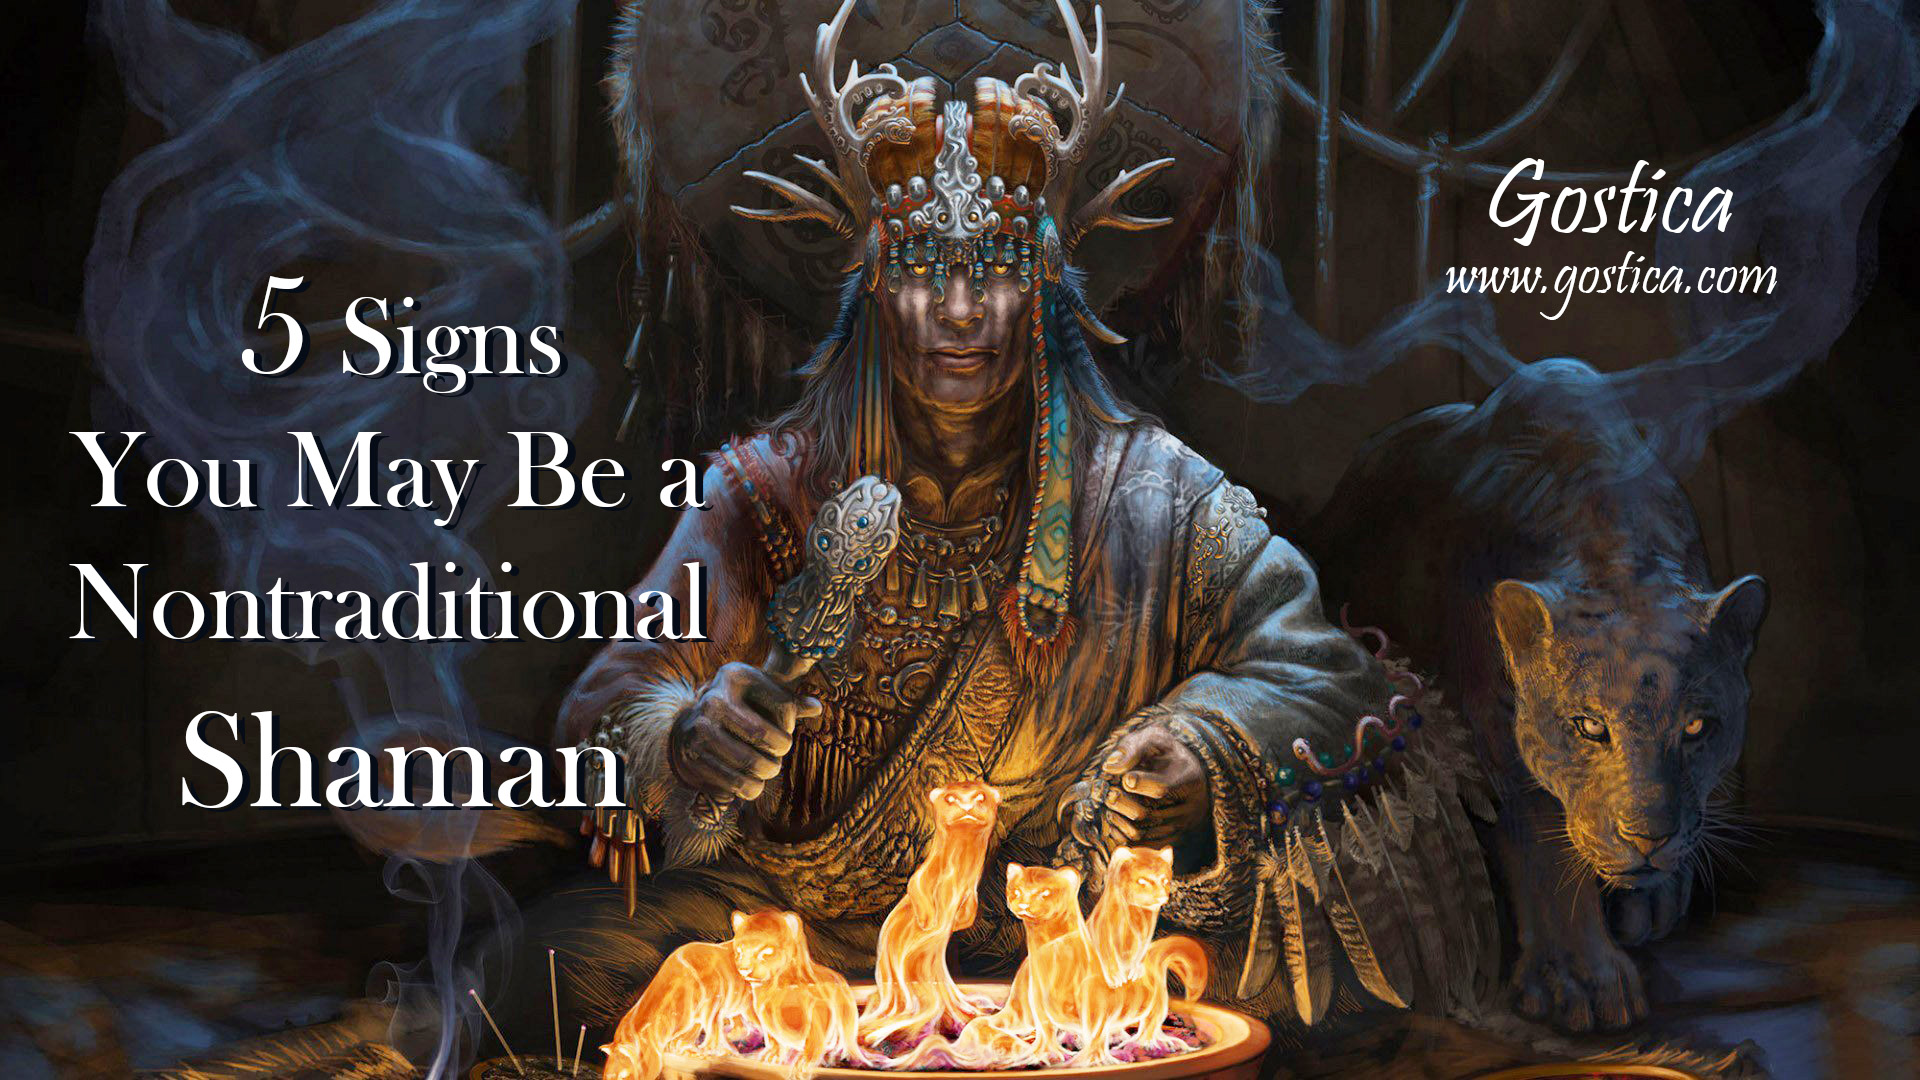 5-Signs-You-May-Be-a-Nontraditional-Shaman.jpg